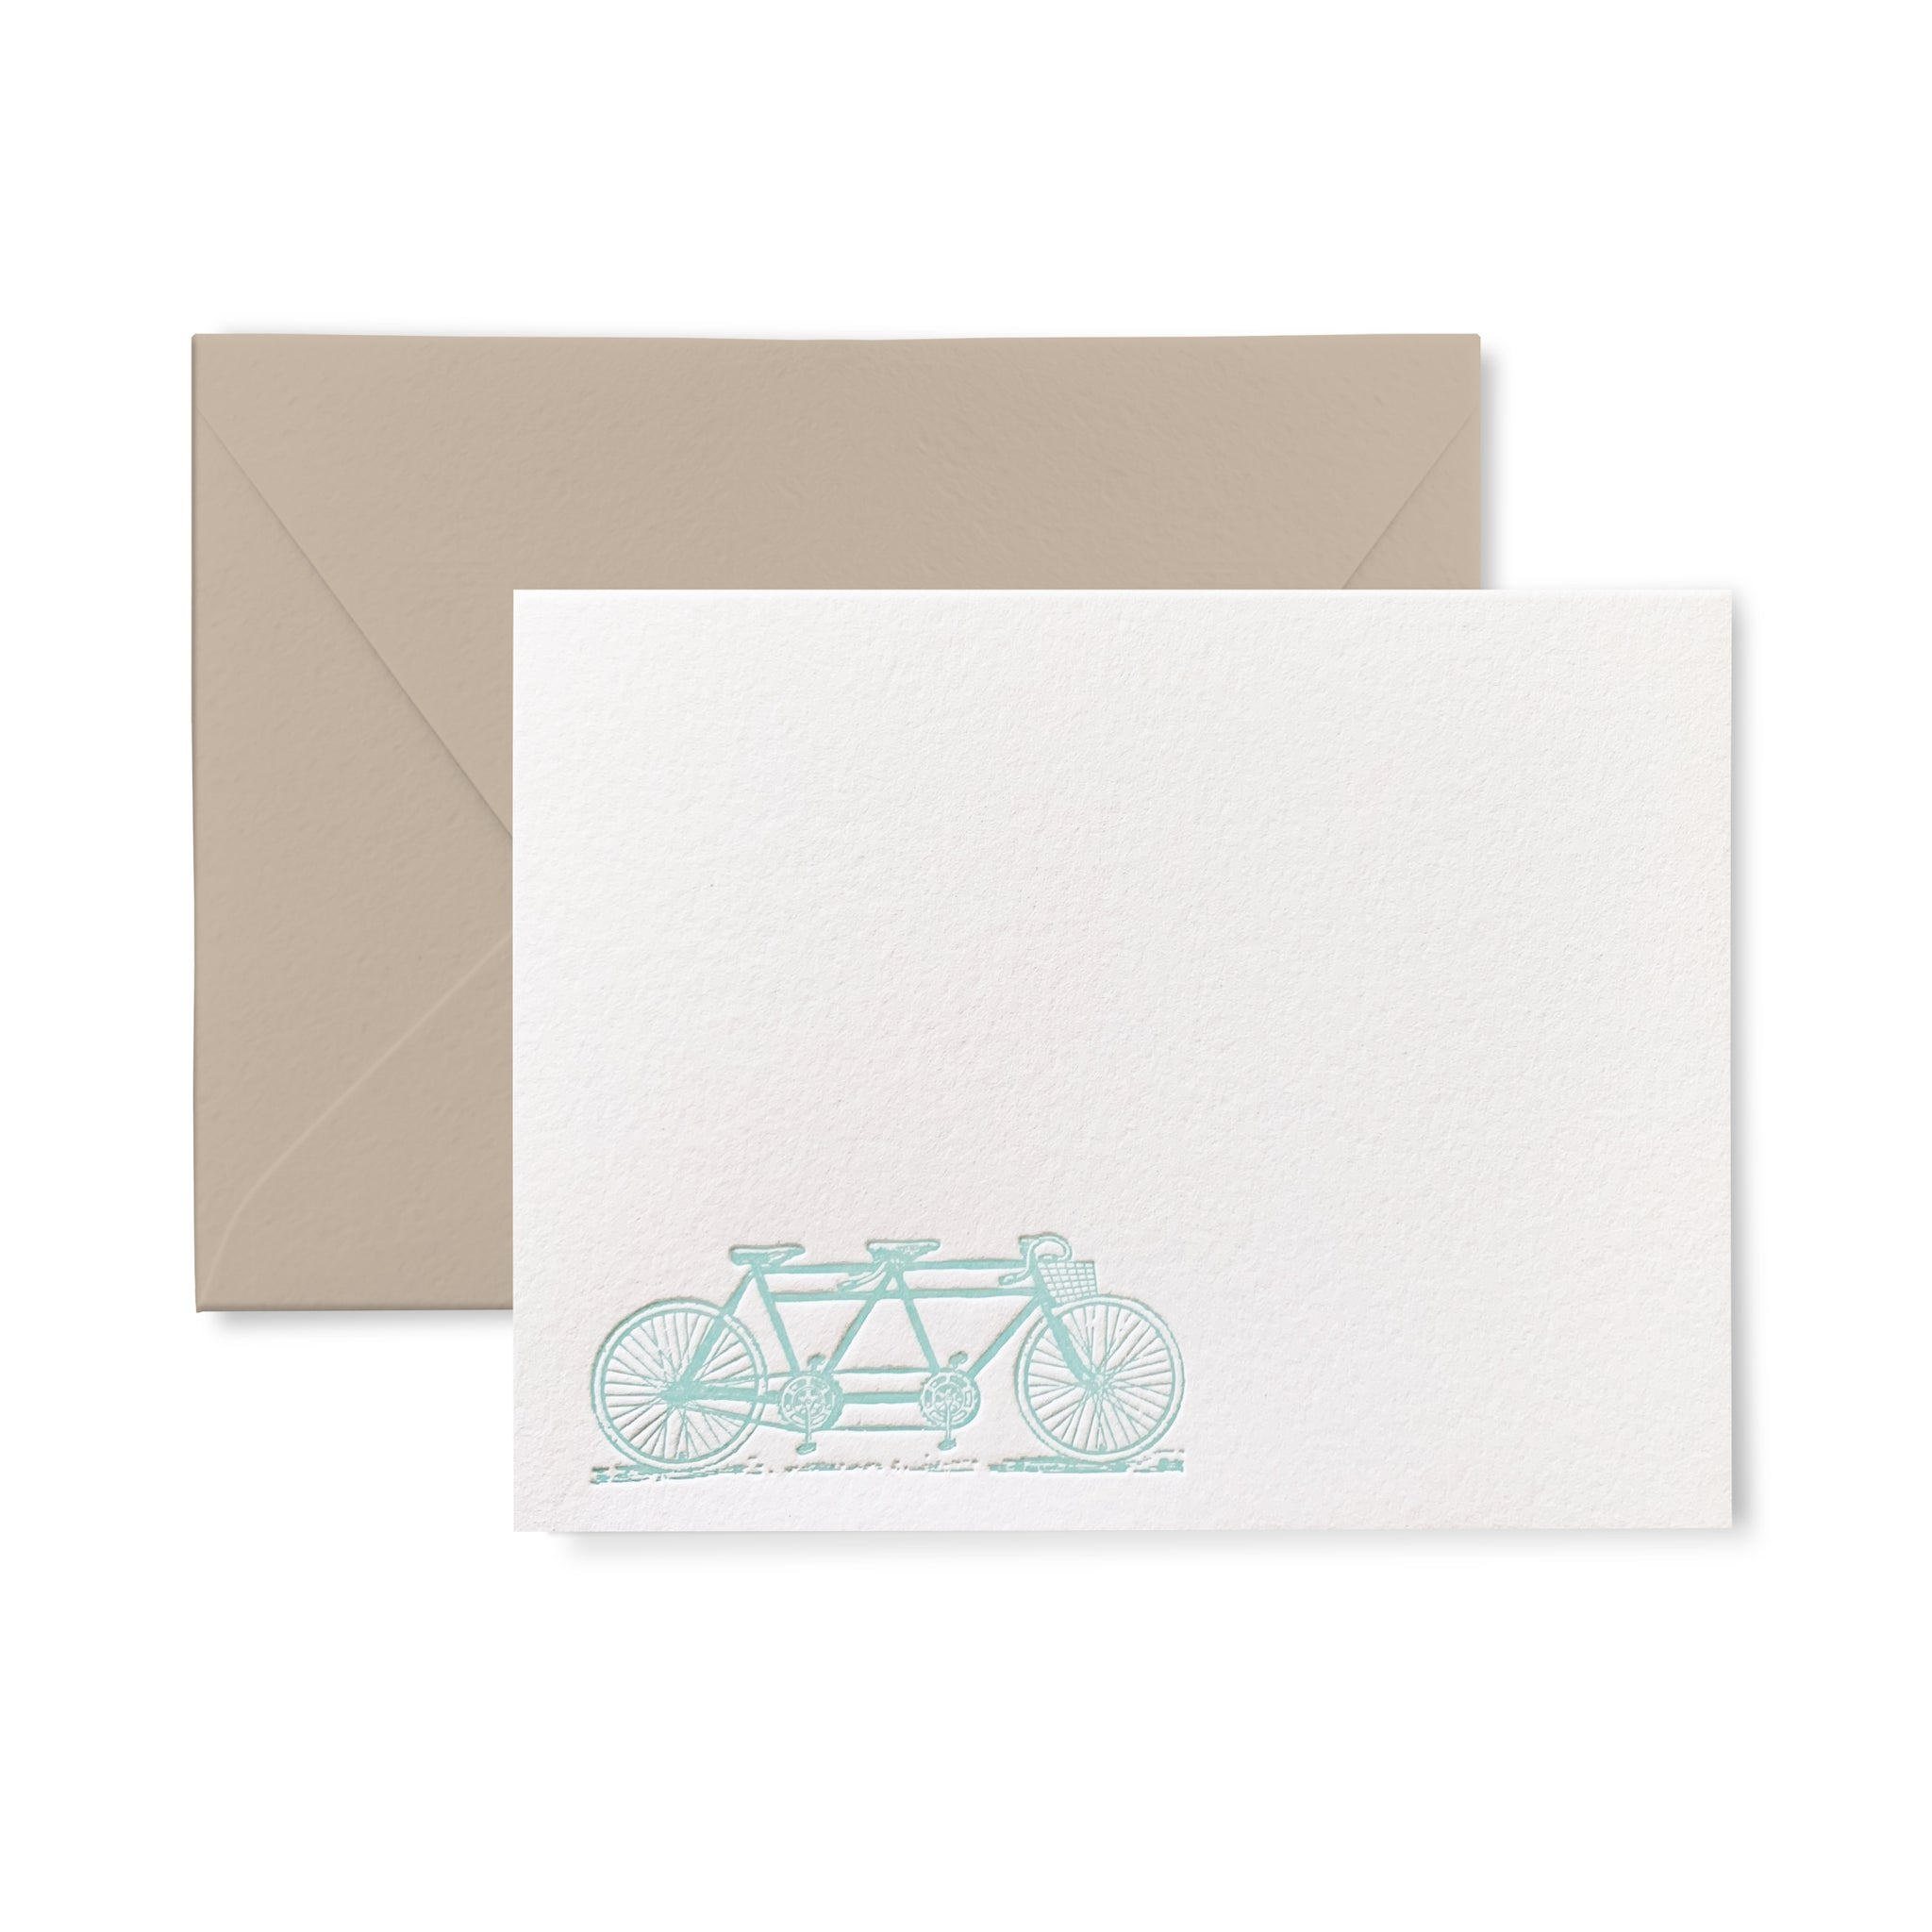 Tandem Bike - Letterpress flat card pack